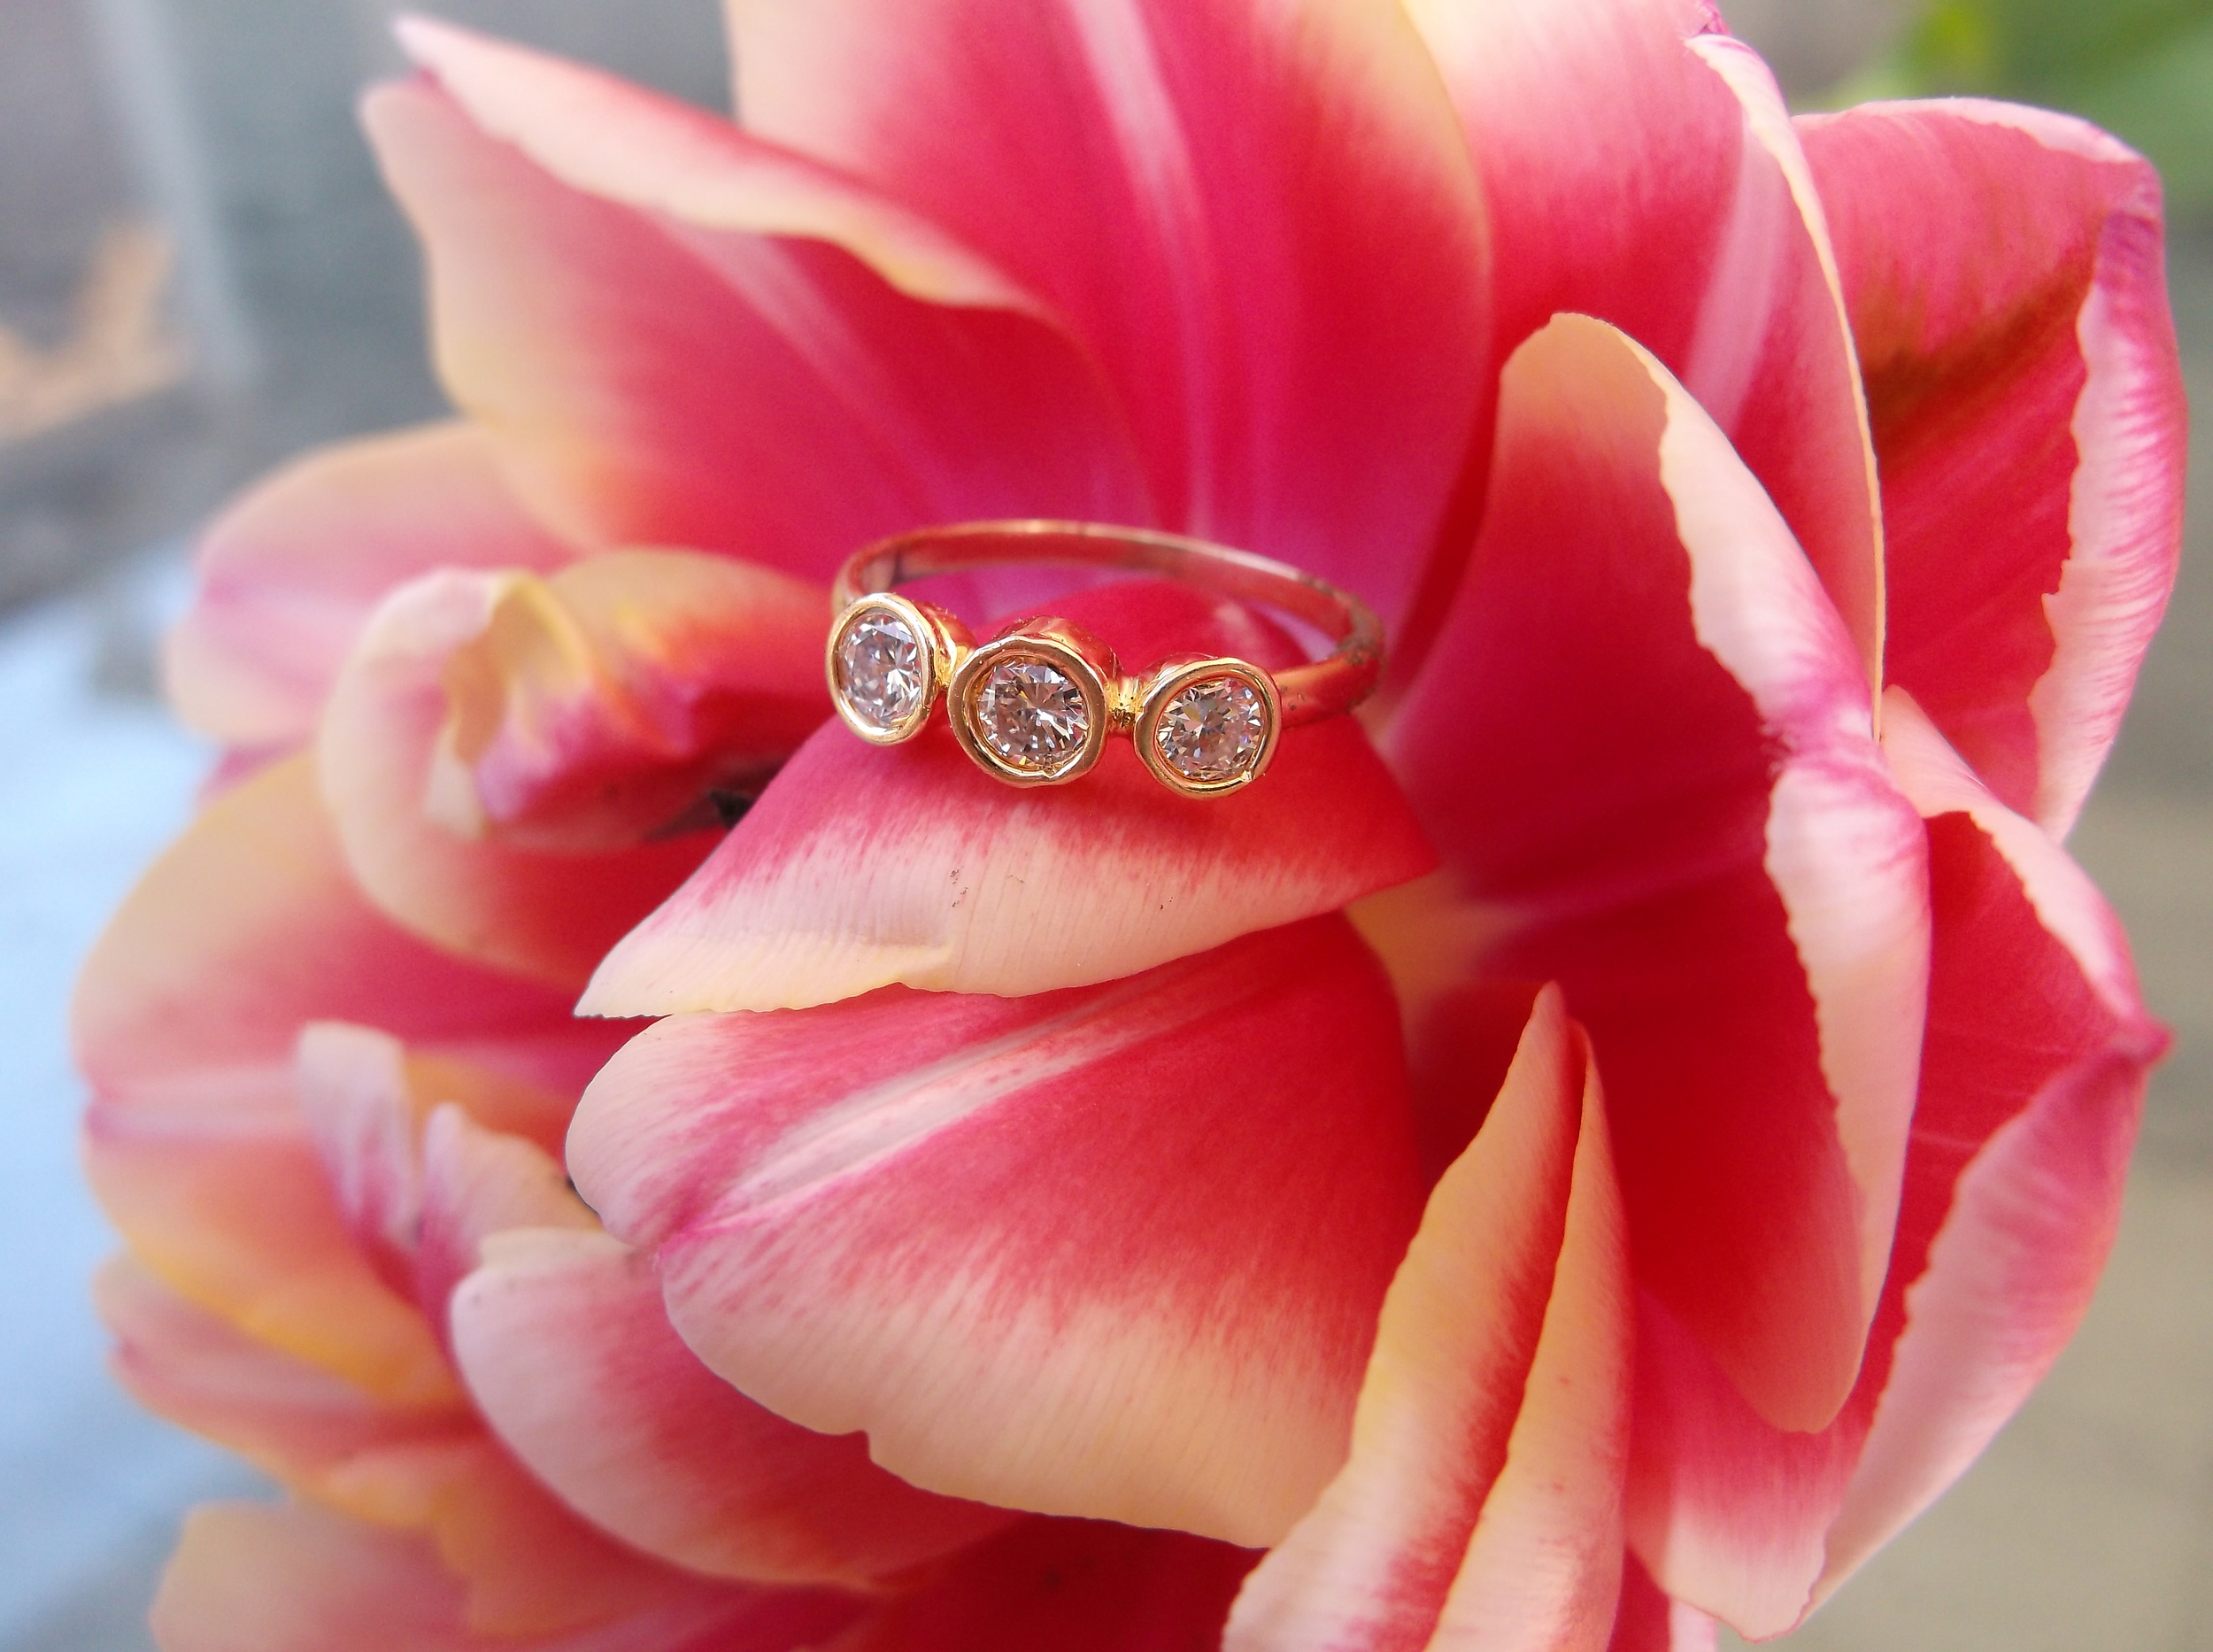 SOLD - Dainty three stone diamond ring set in a 14K yellow gold bezel moutning with 0.30 carats total weight in diamonds.